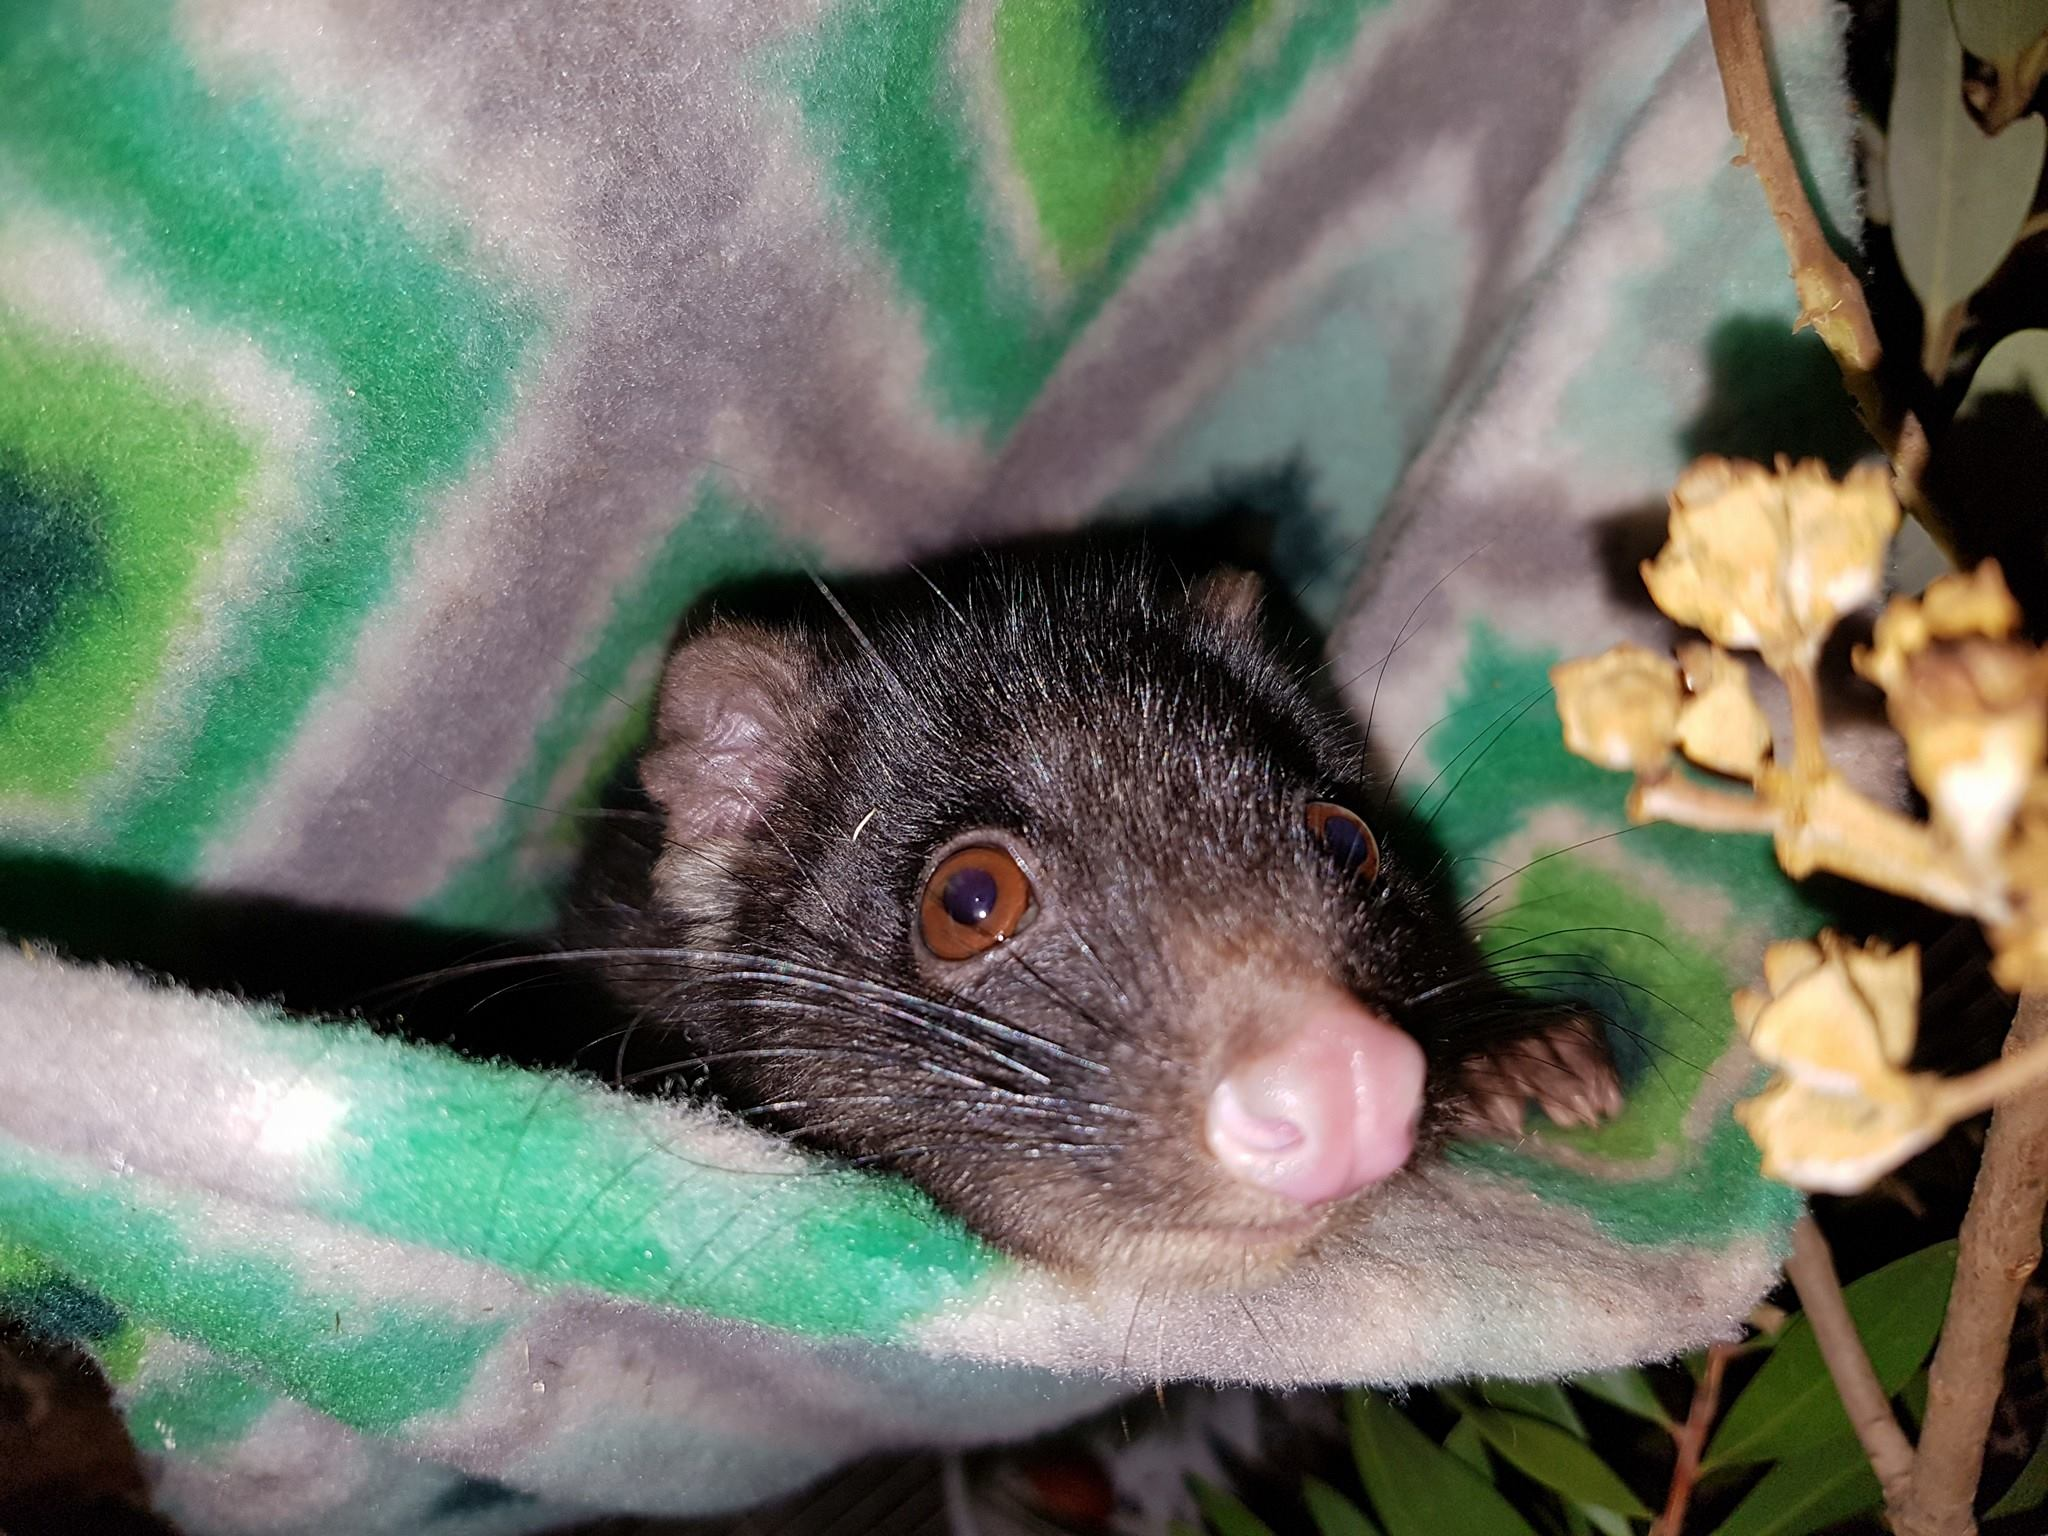 Pax a critically endangered Western Ring Tail Possum in care at HideAway Haven